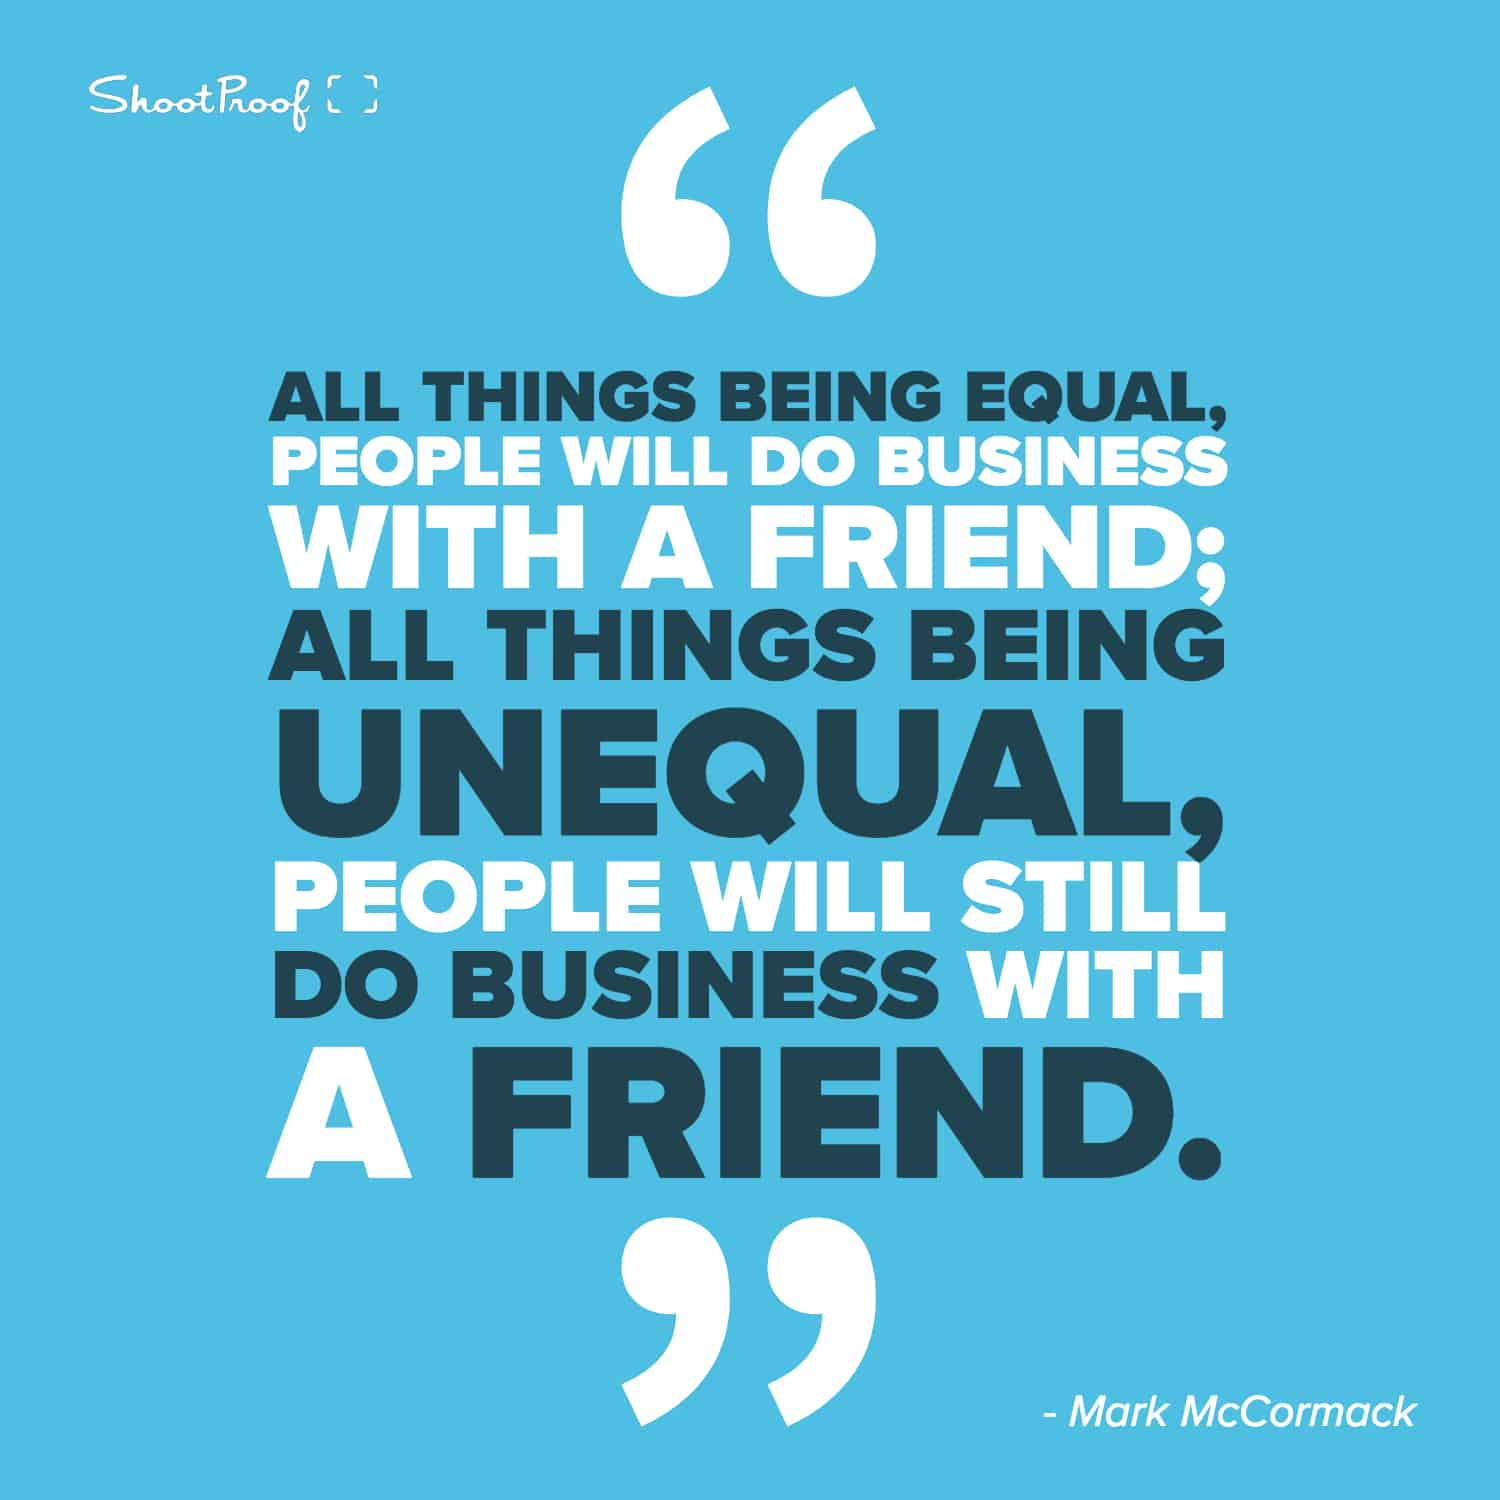 """""""All things being equal, people will do business with a friend; all things being unequal, people will still do business with a friend."""" - Mark McCormack"""